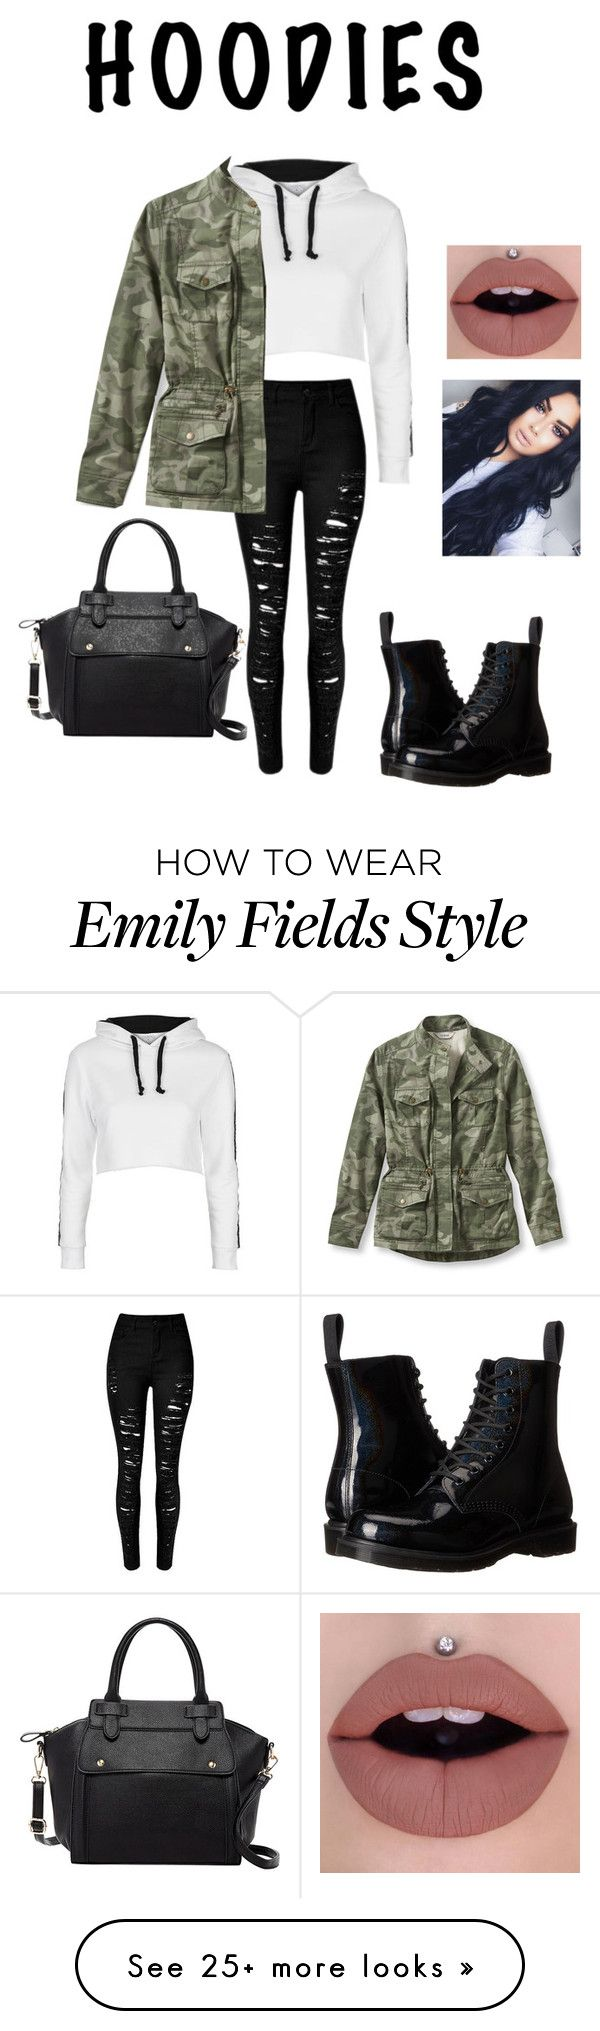 """Hoodie For The Fall"" by kayla-rampersaud on Polyvore featuring Topshop, L.L.Bean, Dr. Martens and Pink Haley"